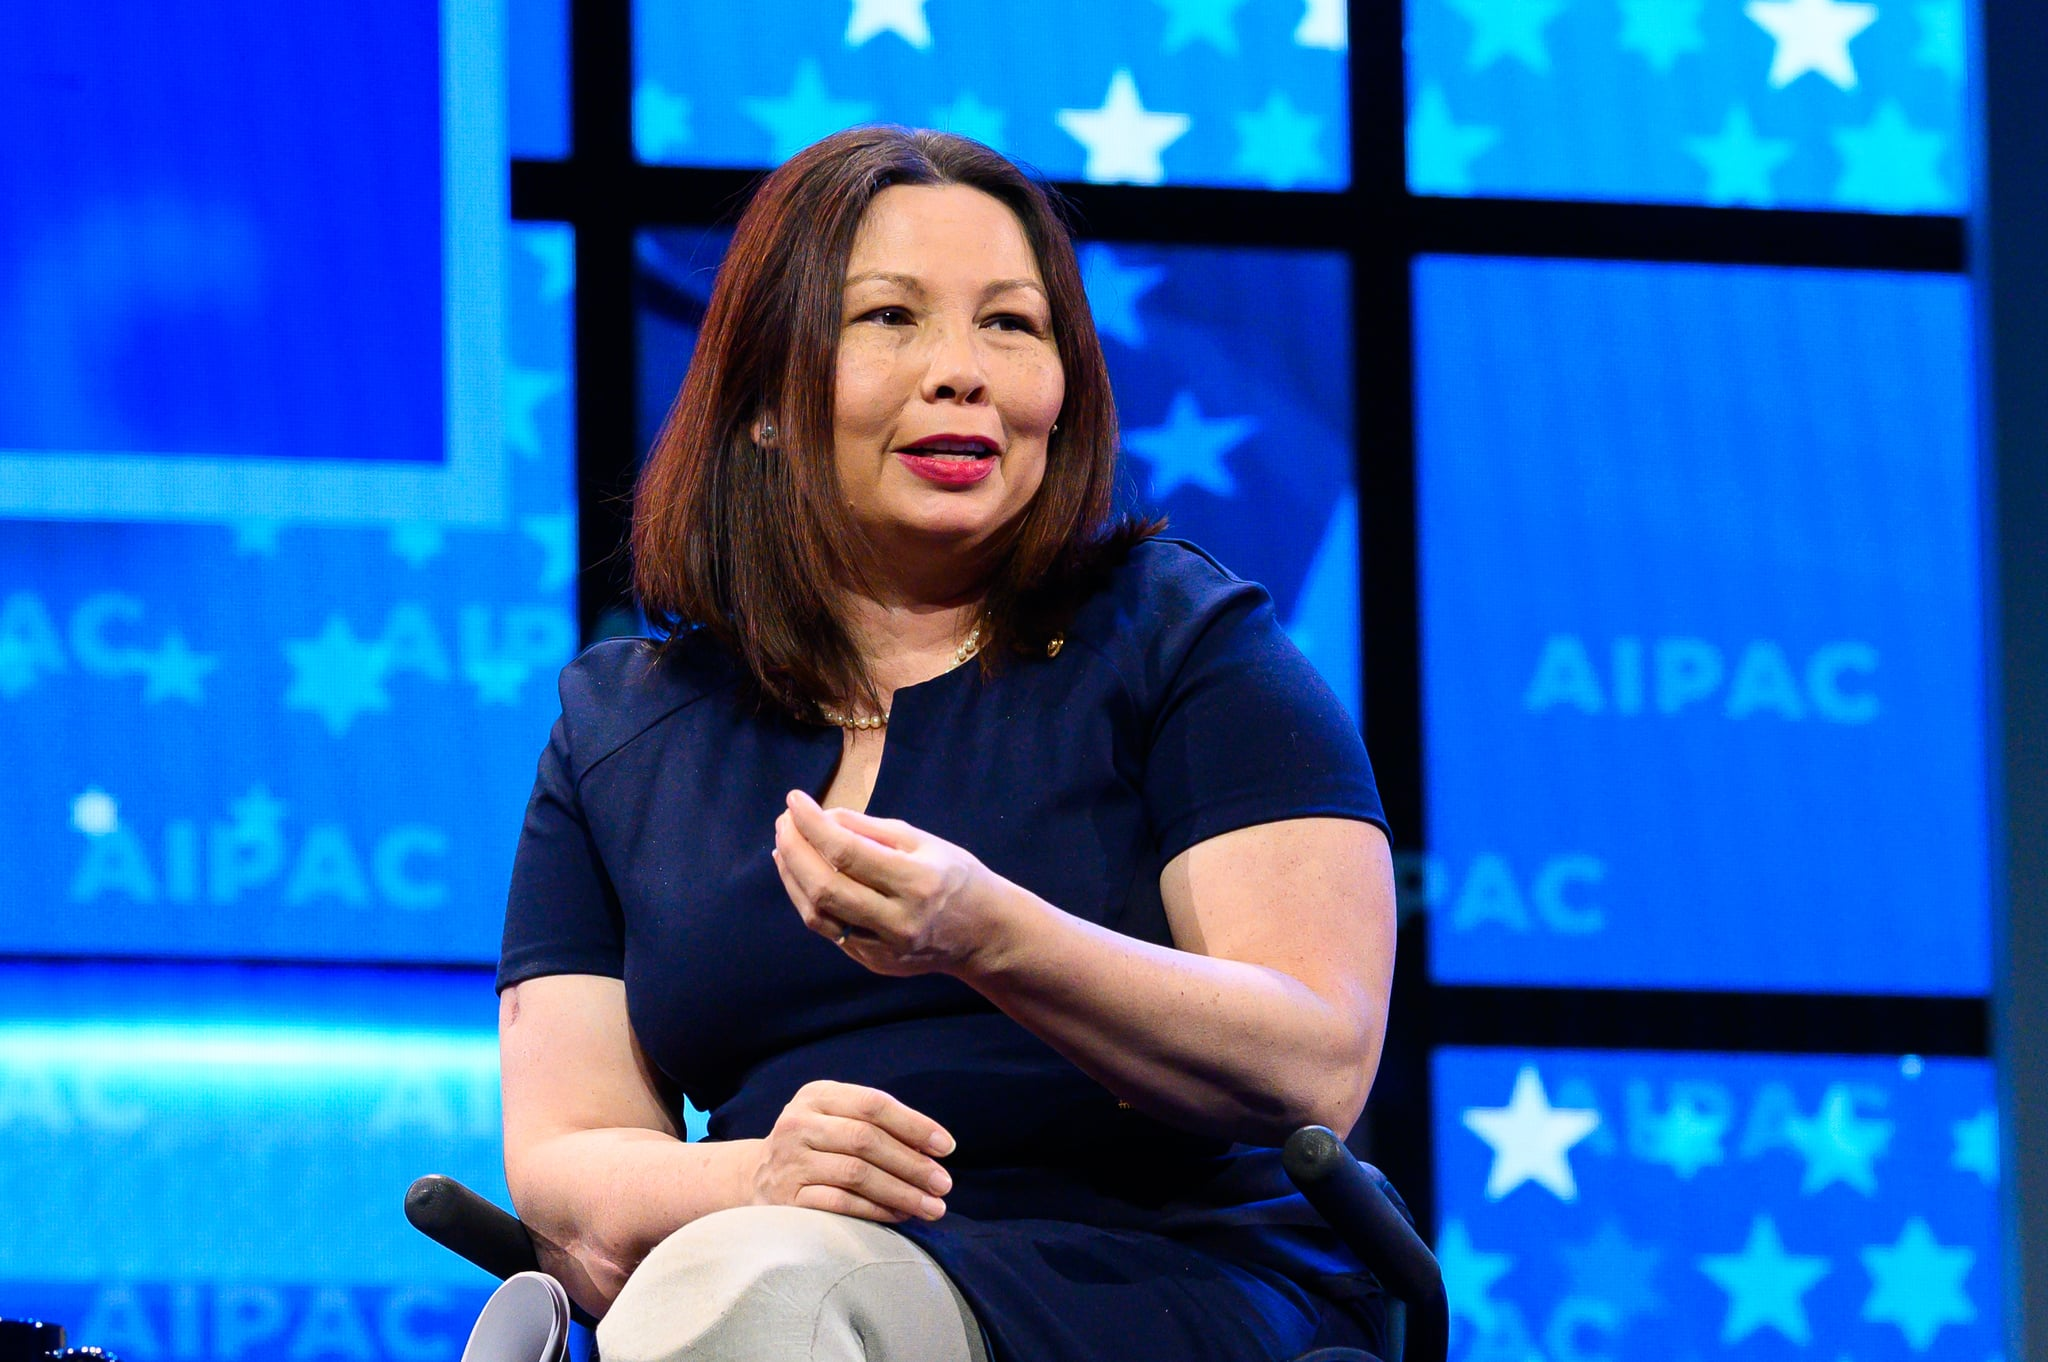 WASHINGTON, DC, UNITED STATES - 2019/03/25: U.S. Senator Tammy Duckworth (D-IL) seen speaking during the American Israel Public Affairs Committee (AIPAC) Policy Conference in Washington, DC. (Photo by Michael Brochstein/SOPA Images/LightRocket via Getty Images)